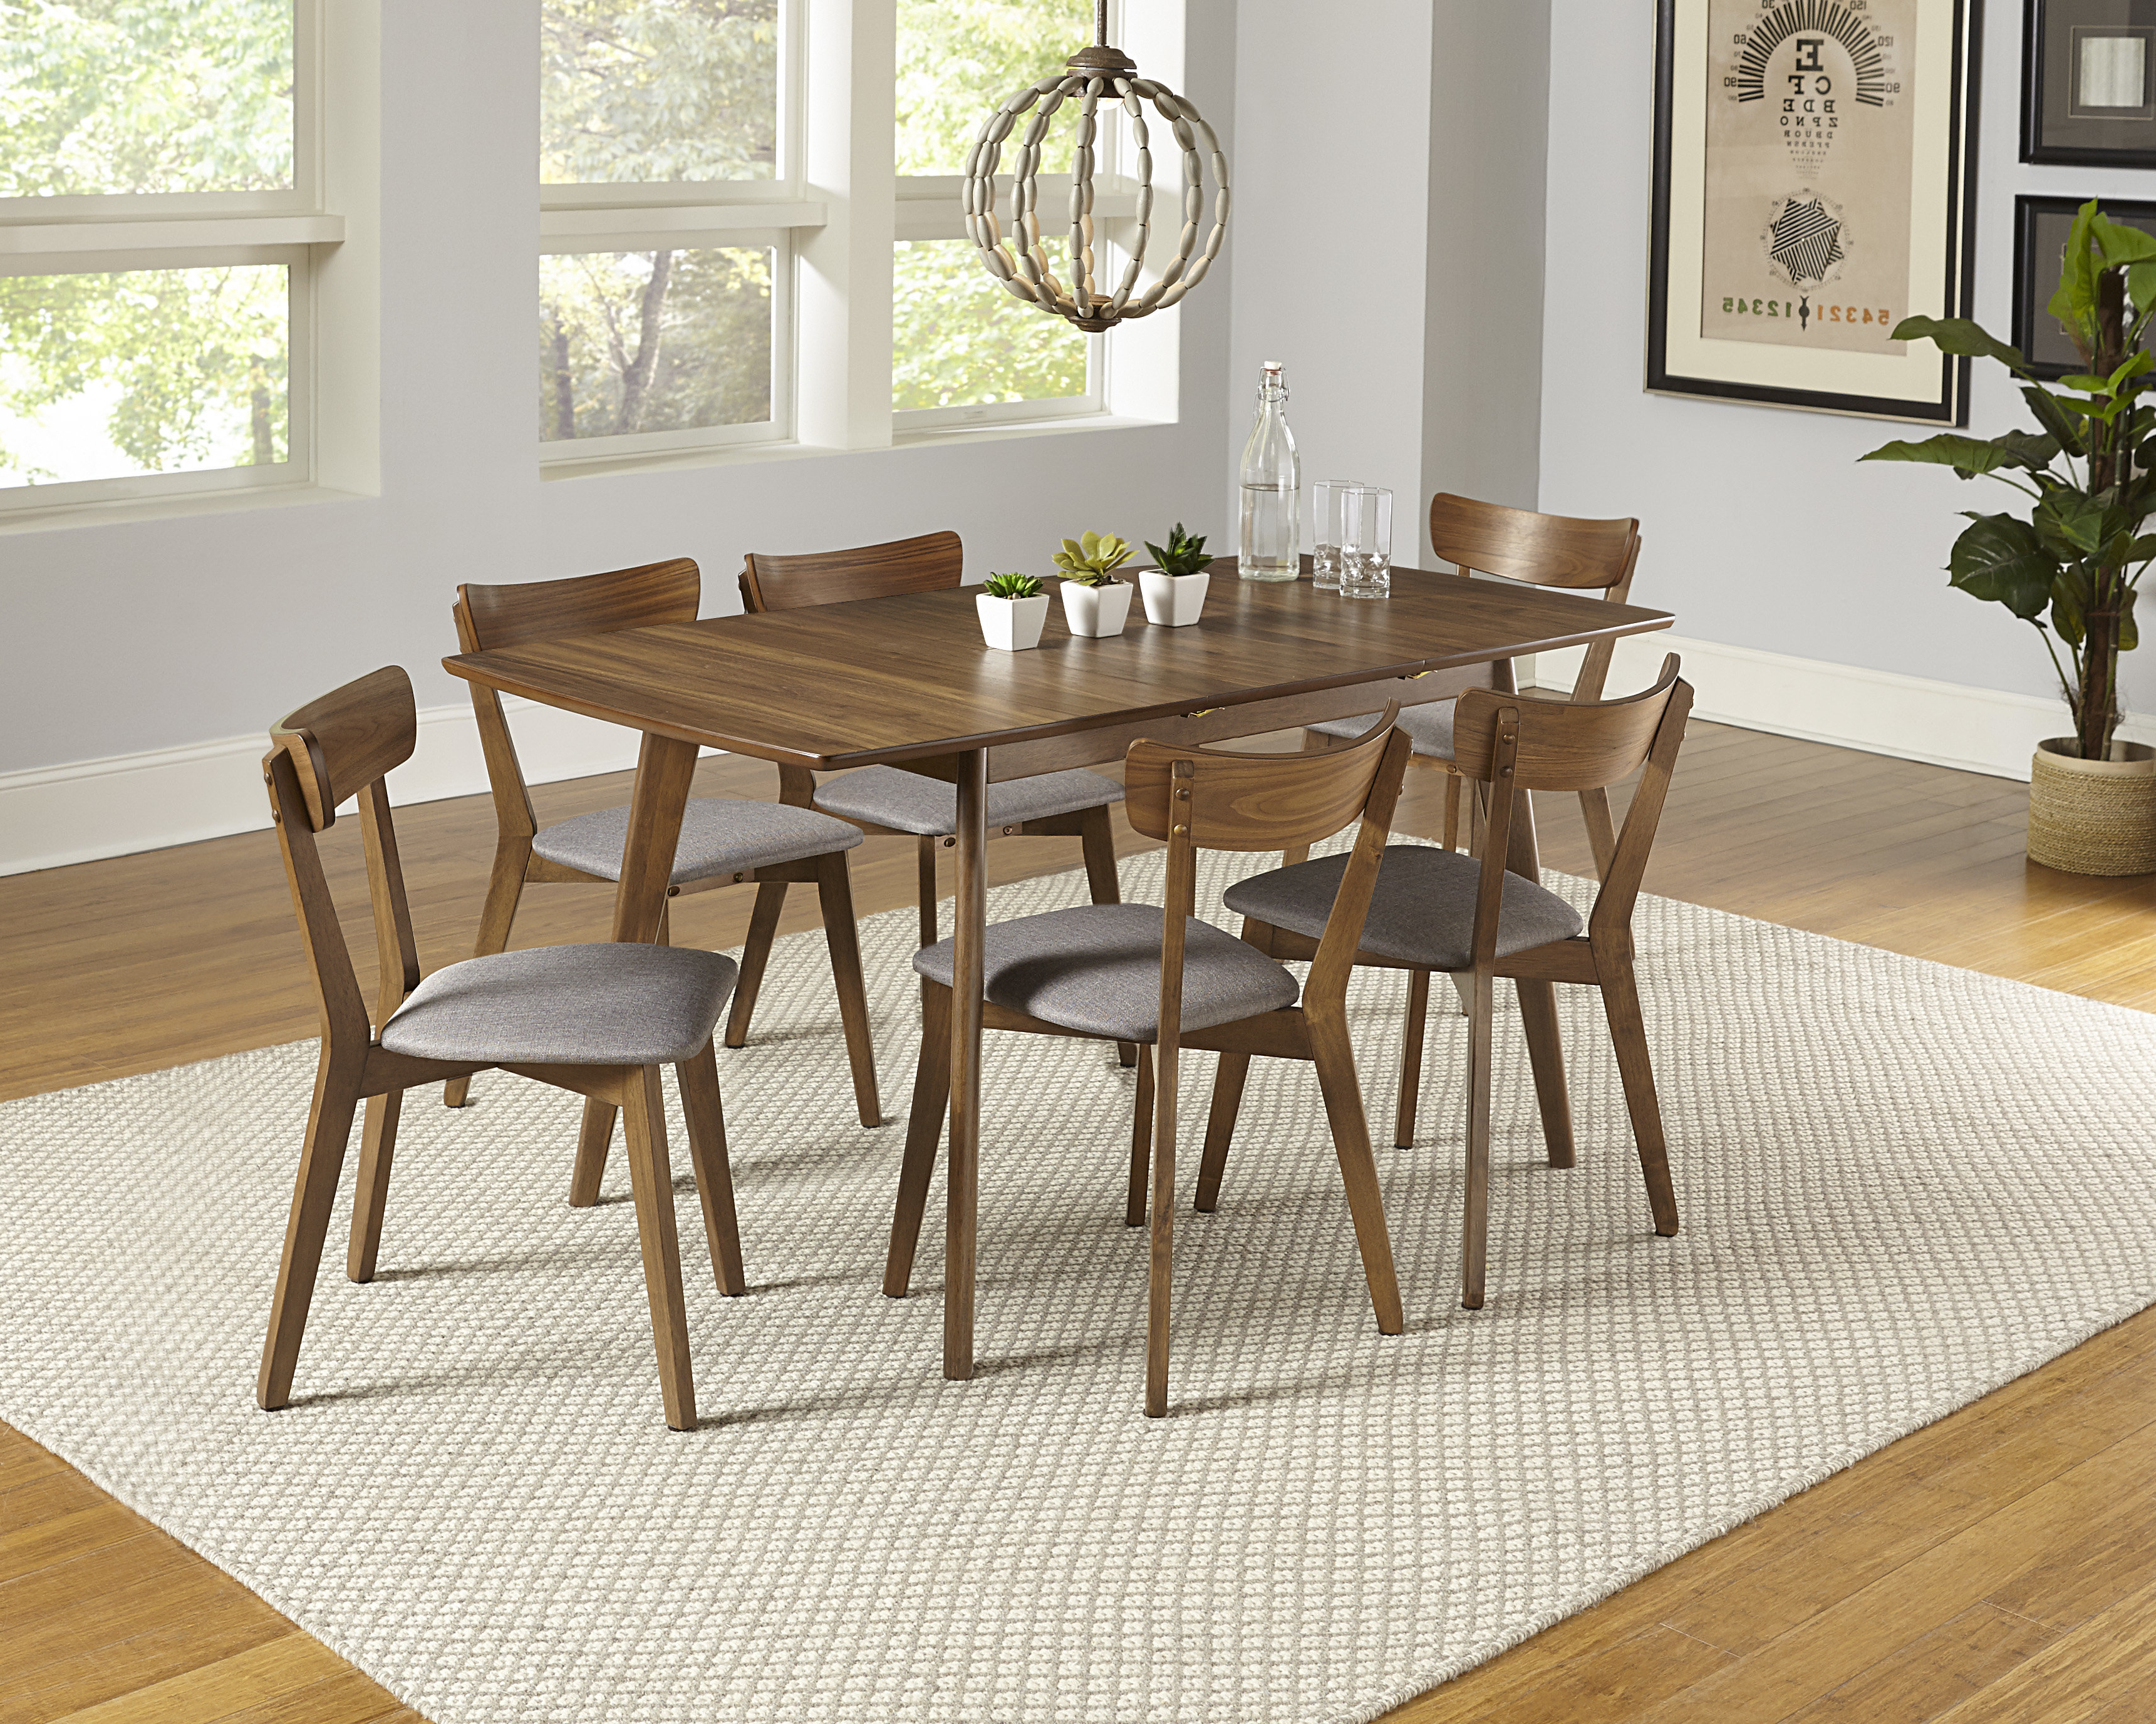 Frida 3 Piece Dining Table Sets With Latest Rockaway 7 Piece Extendable Solid Wood Dining Set (View 10 of 20)